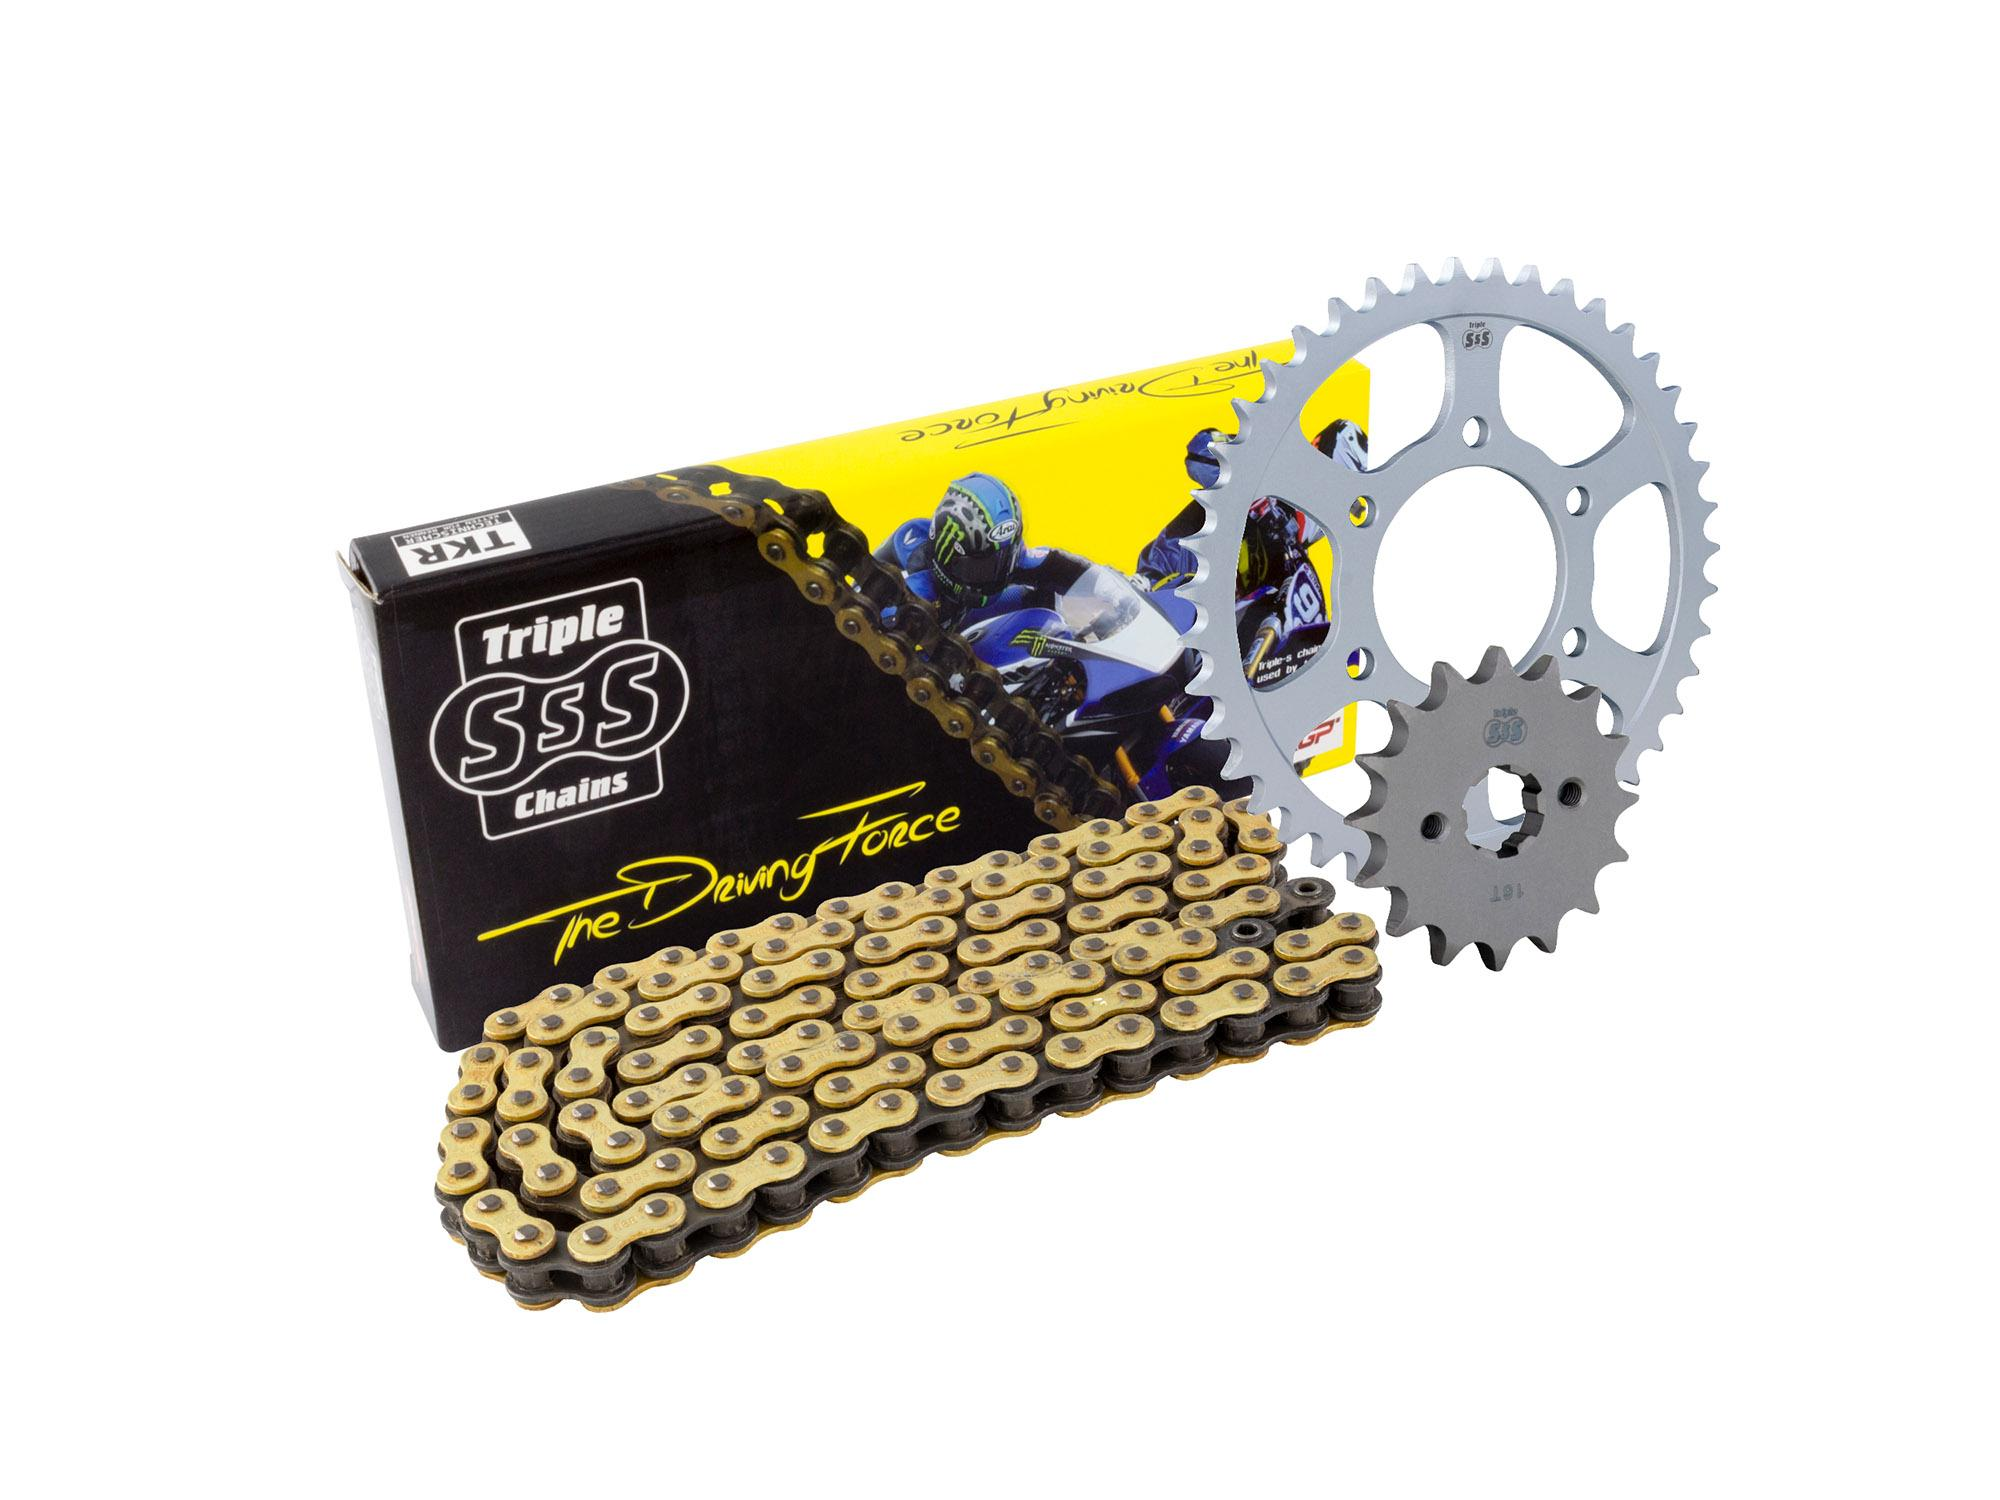 Triumph 865 America 07-12 Chain & Sprocket Kit: 17T Front, 42T Rear, HD O-Ring Gold Chain 525H 112 Link